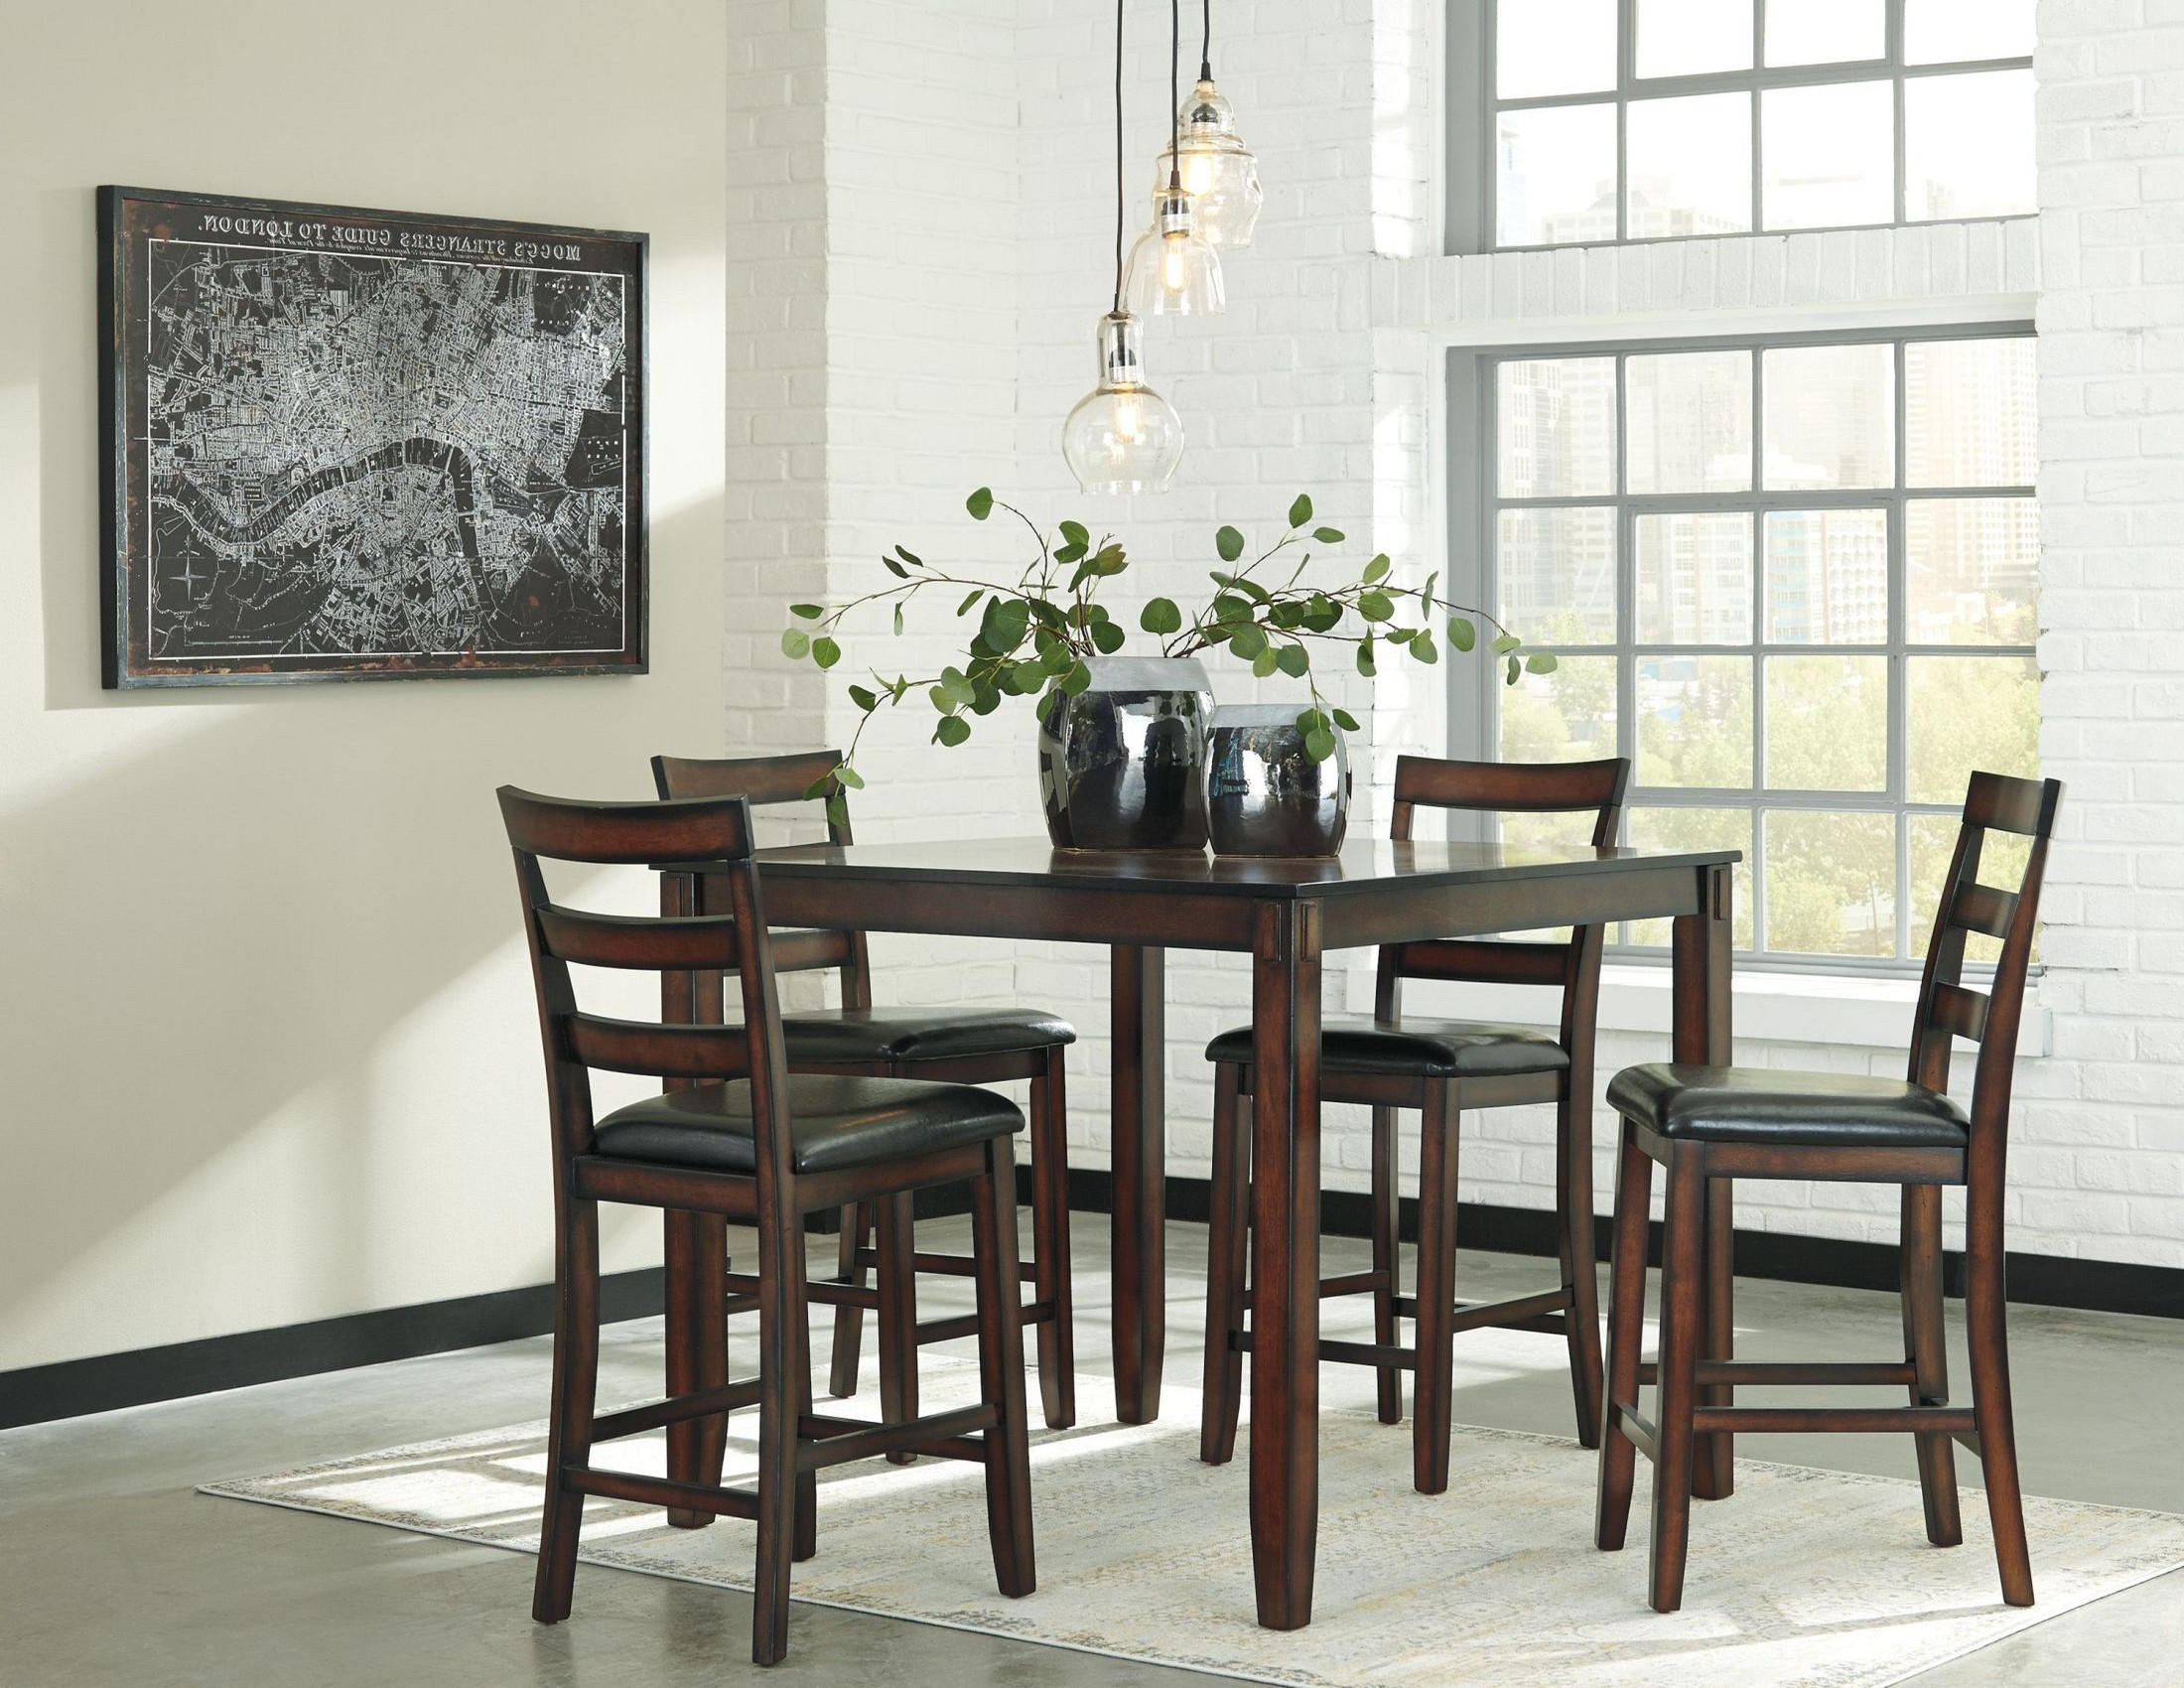 Lonon 3 Piece Dining Sets Pertaining To Most Recently Released Coviar Brown 5 Piece Counter Height Dining Room Set From Ashley (View 16 of 25)